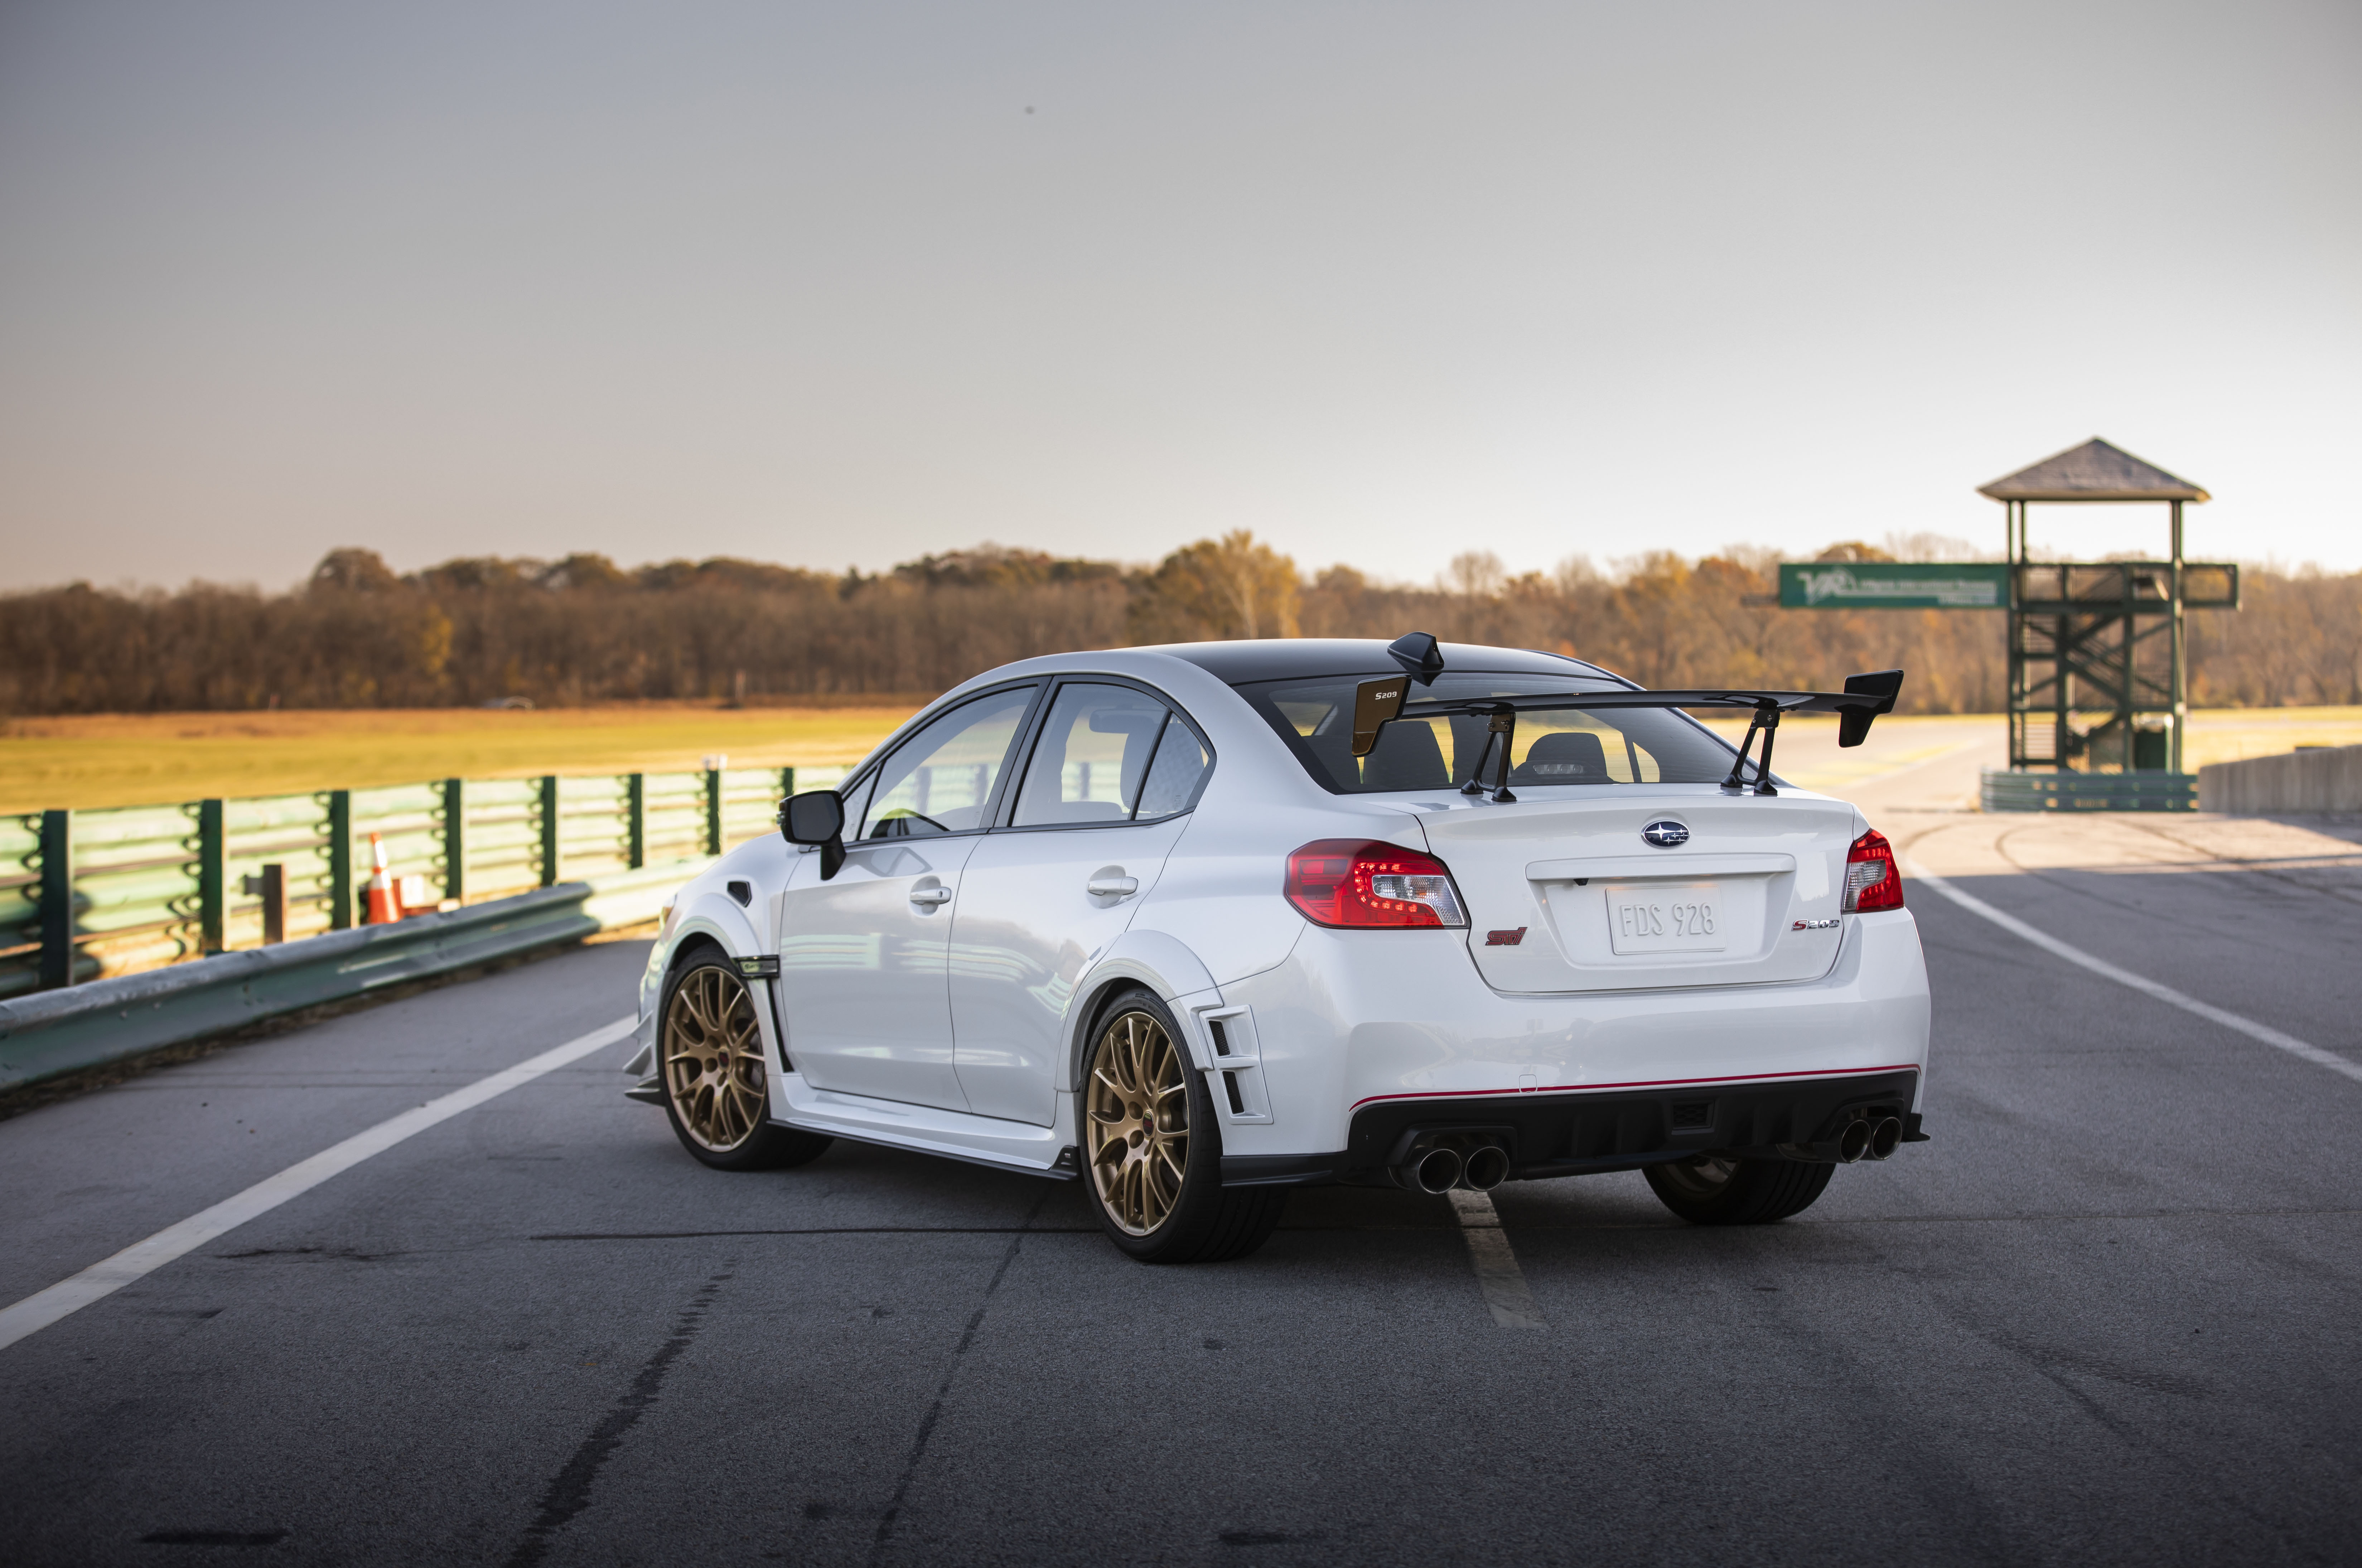 2020 Subaru Wrx Sti S209 341 Hp Race Ready Upgrades And Just 200